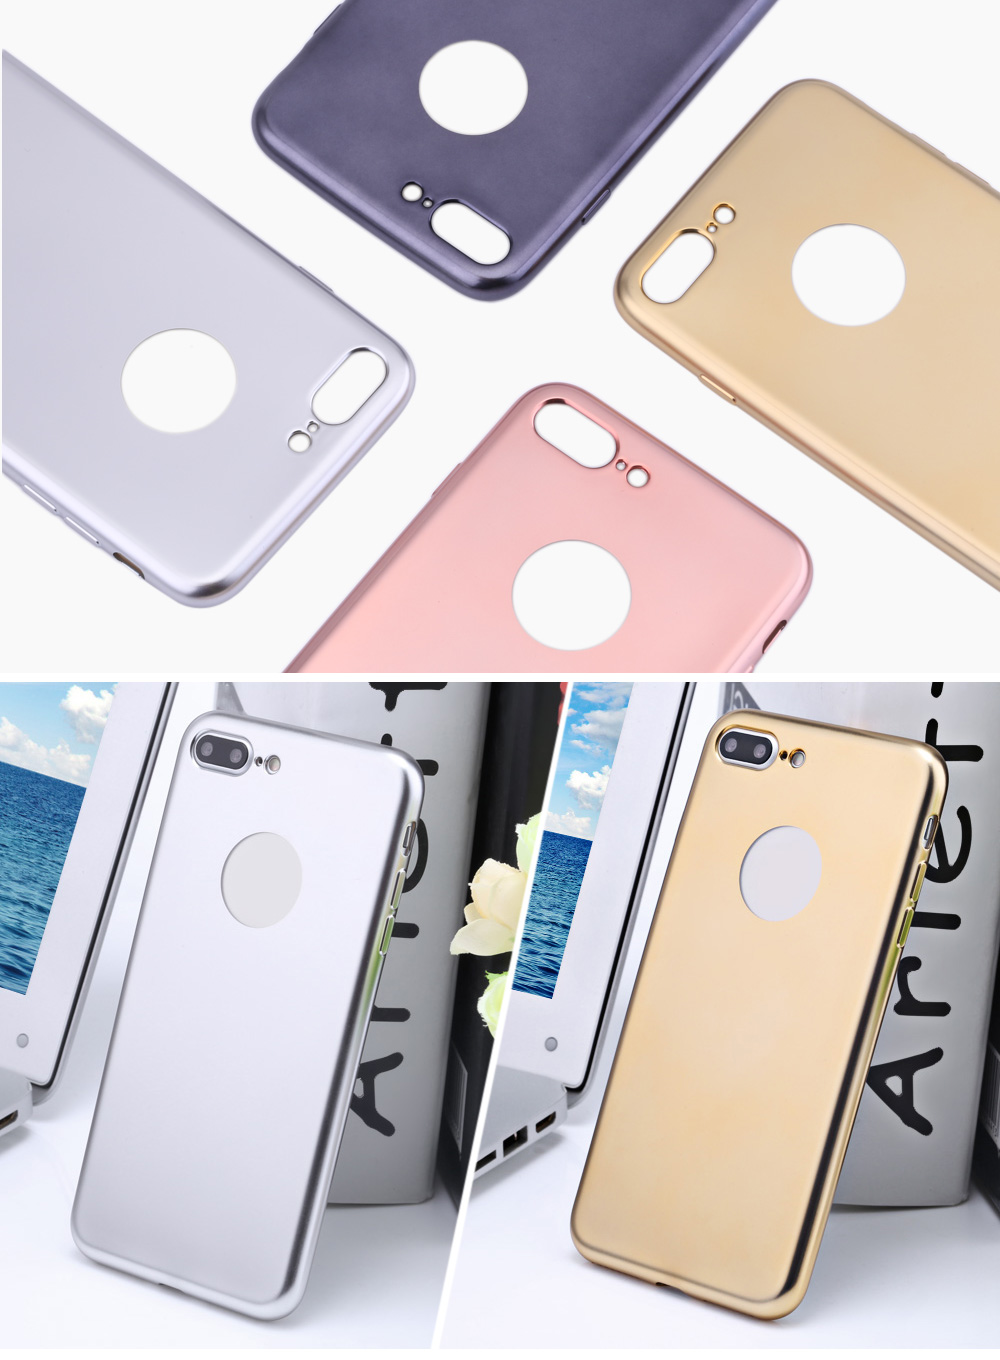 Frosted Electroplate Plating TPU Back Cover Case for iPhone 7 Plus 5.5 inch